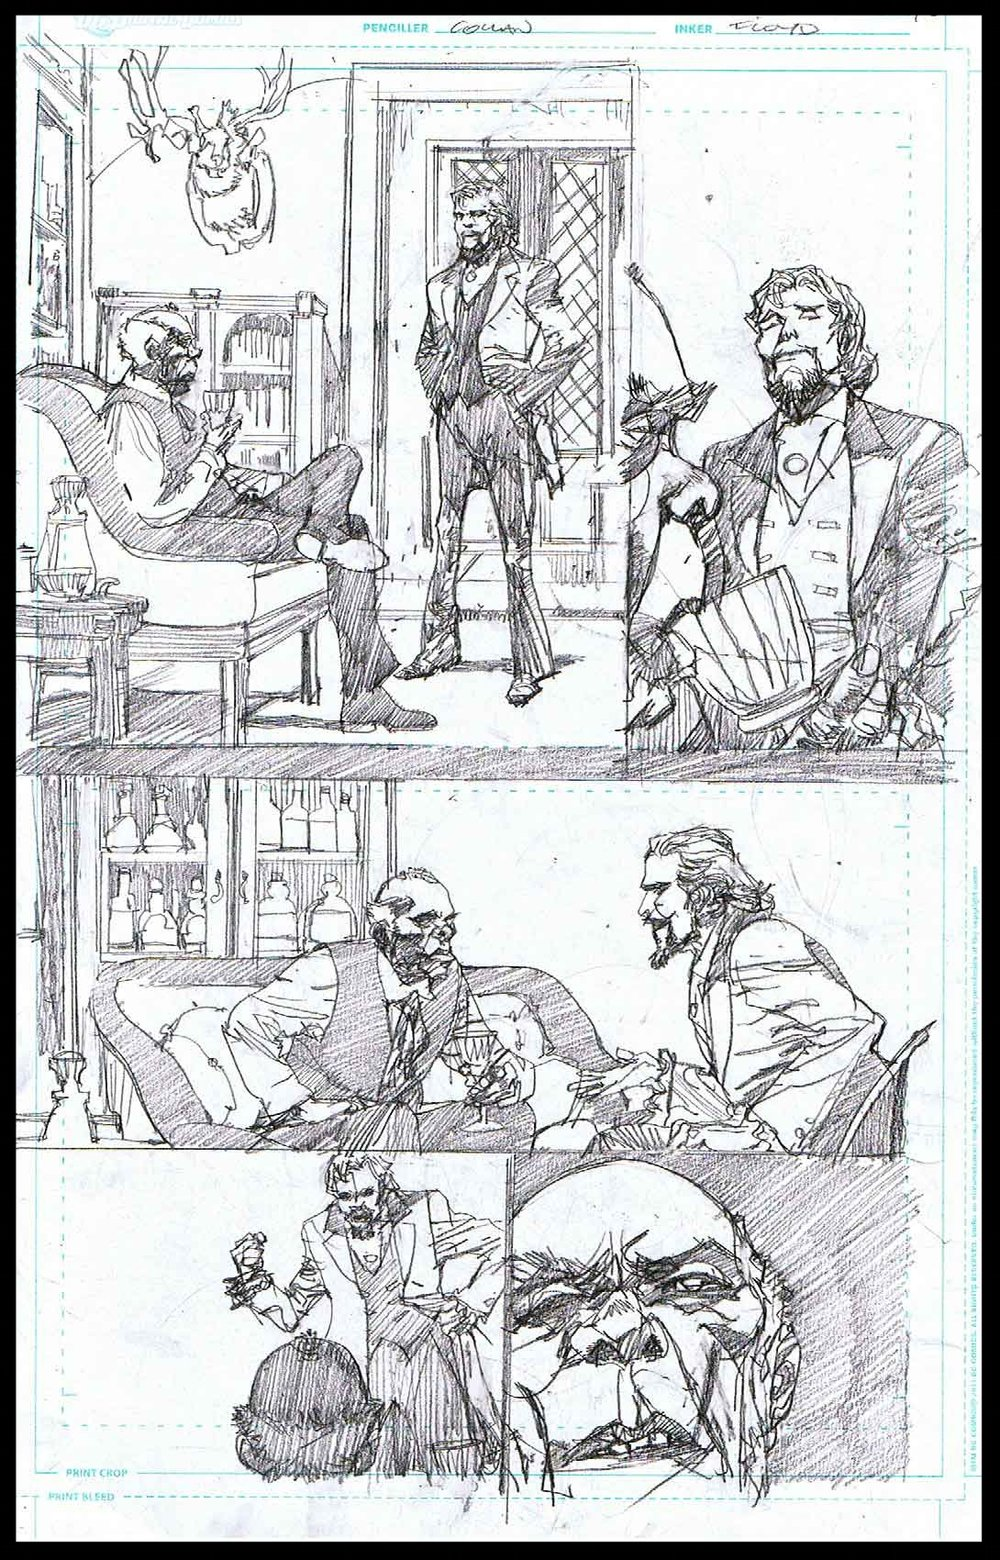 Django Unchained #6 - Page 3 - Pencils